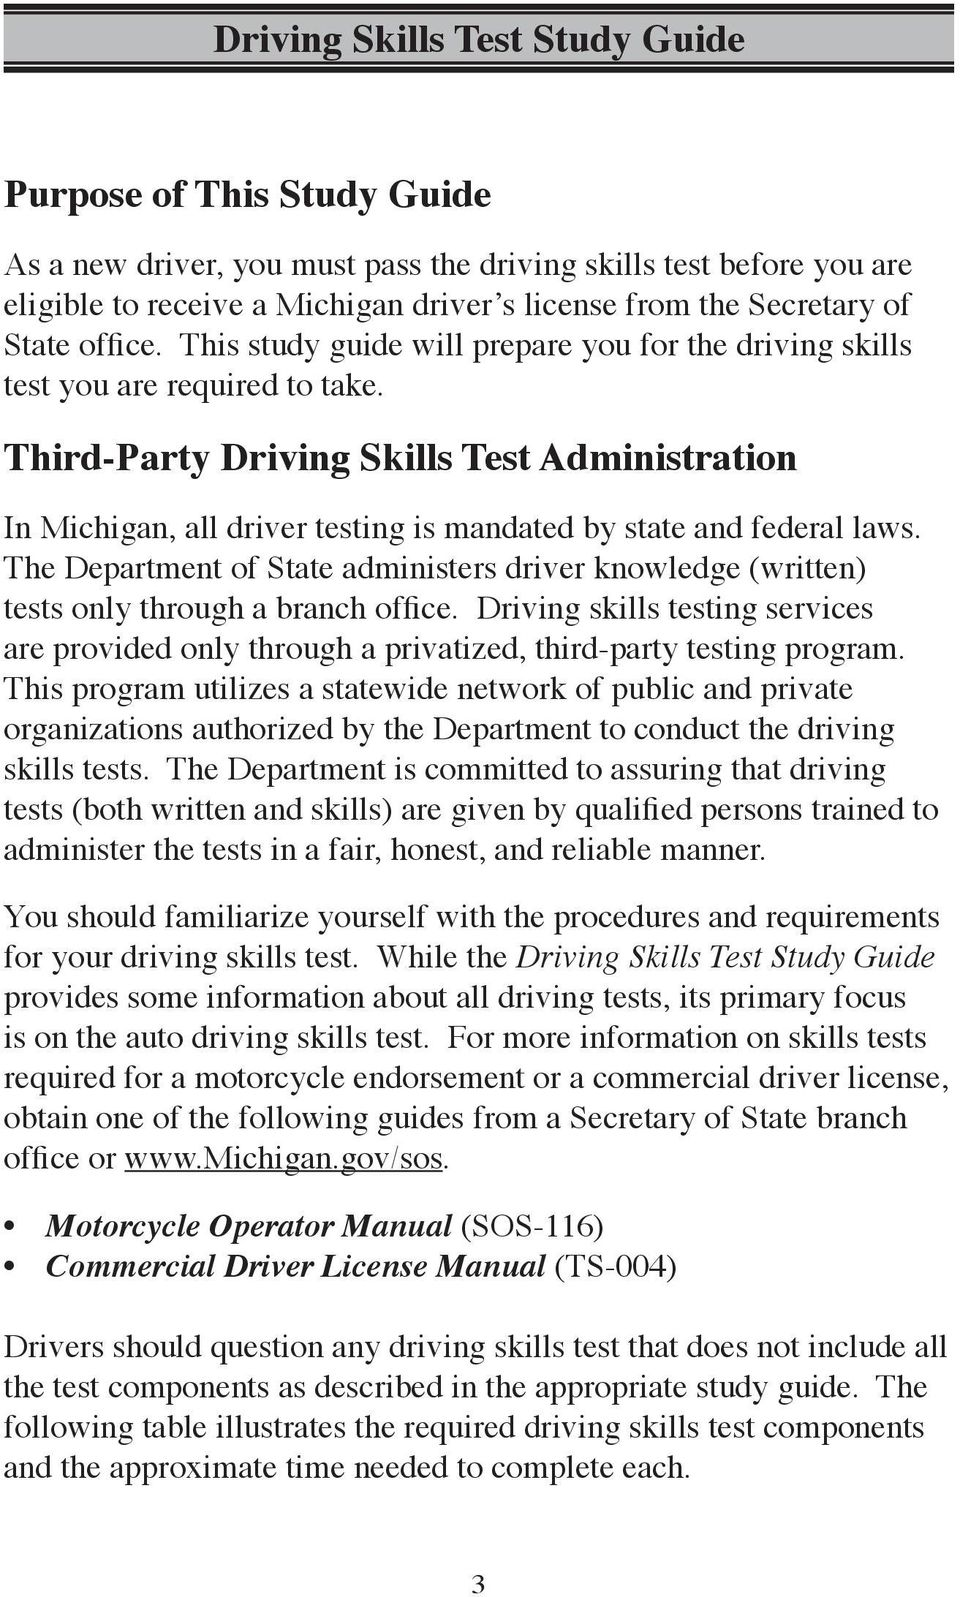 Third-Party Driving Skills Test Administration In Michigan, all driver  testing is mandated by